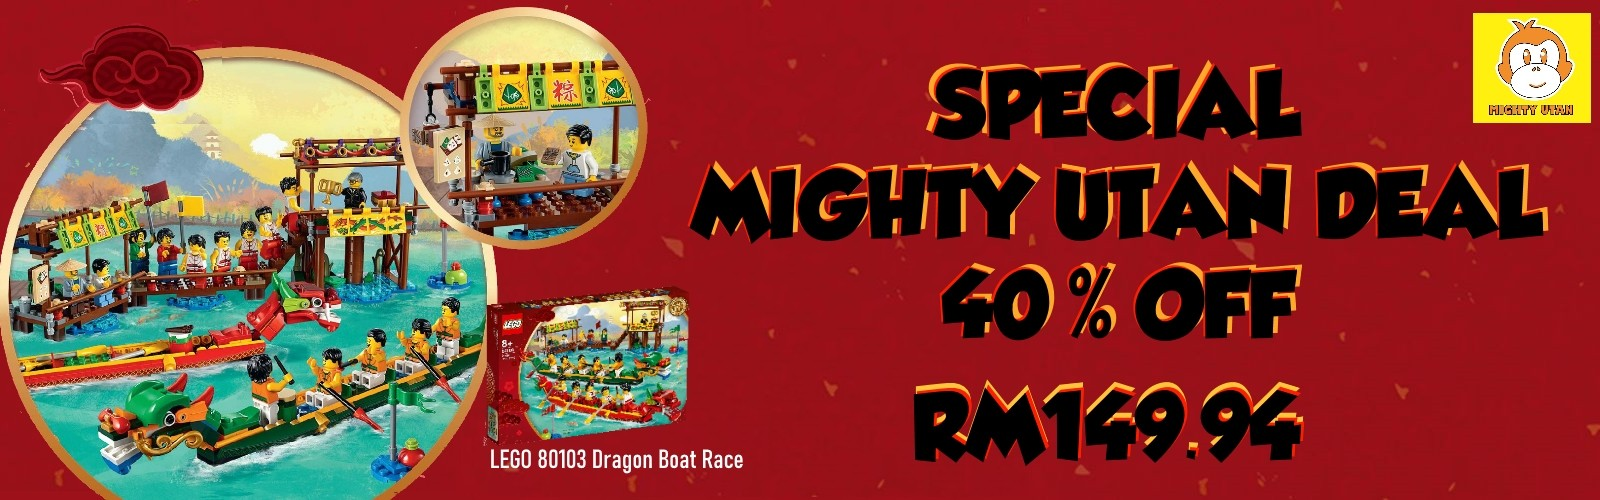 Special Mighty Utan Deal 40 Off 16th - 31st Oct 2019